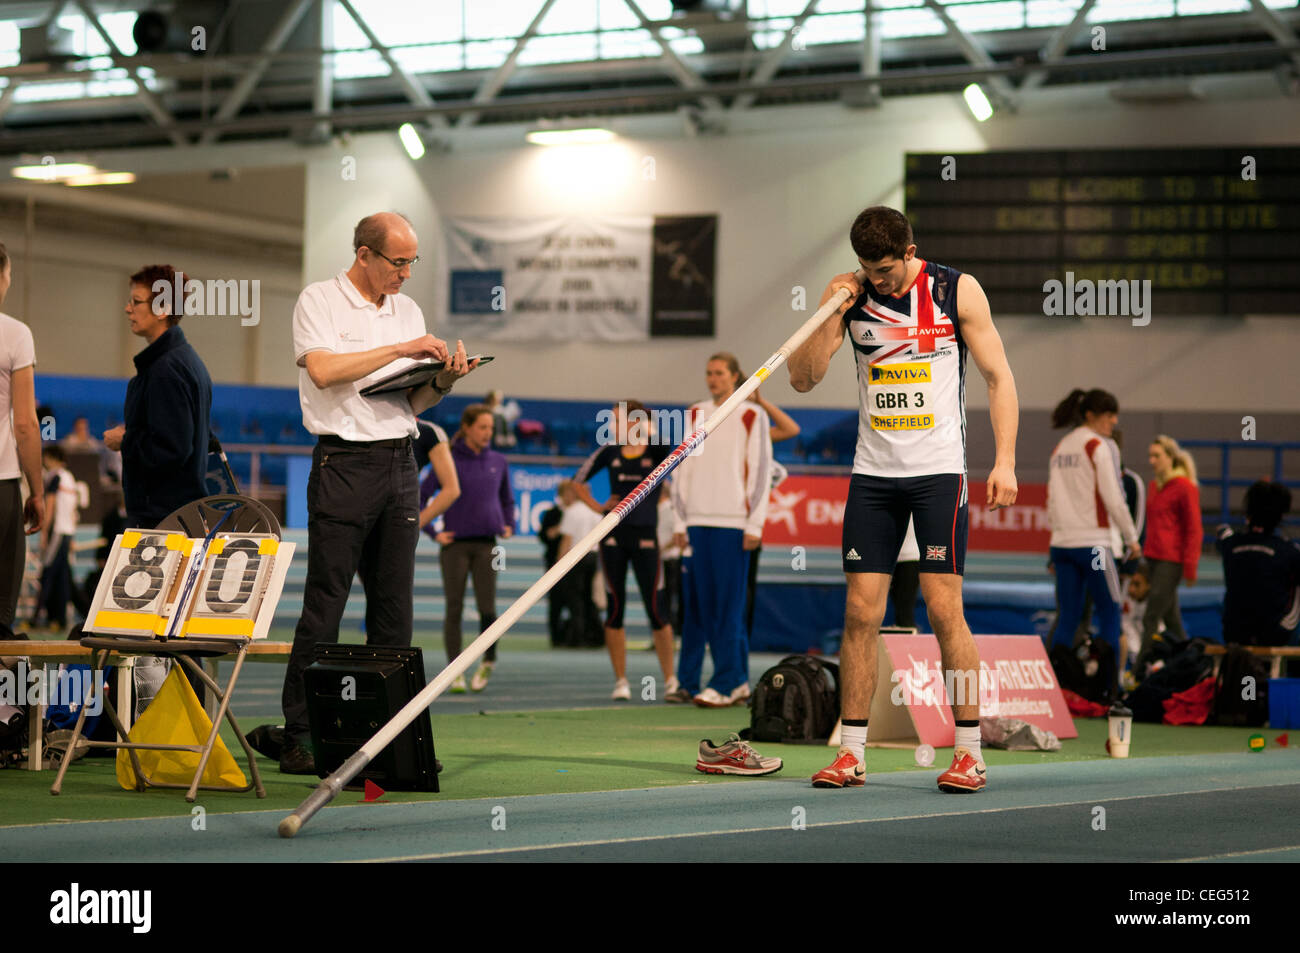 Athlete prepares for second attempt Pole Vault - Stock Image